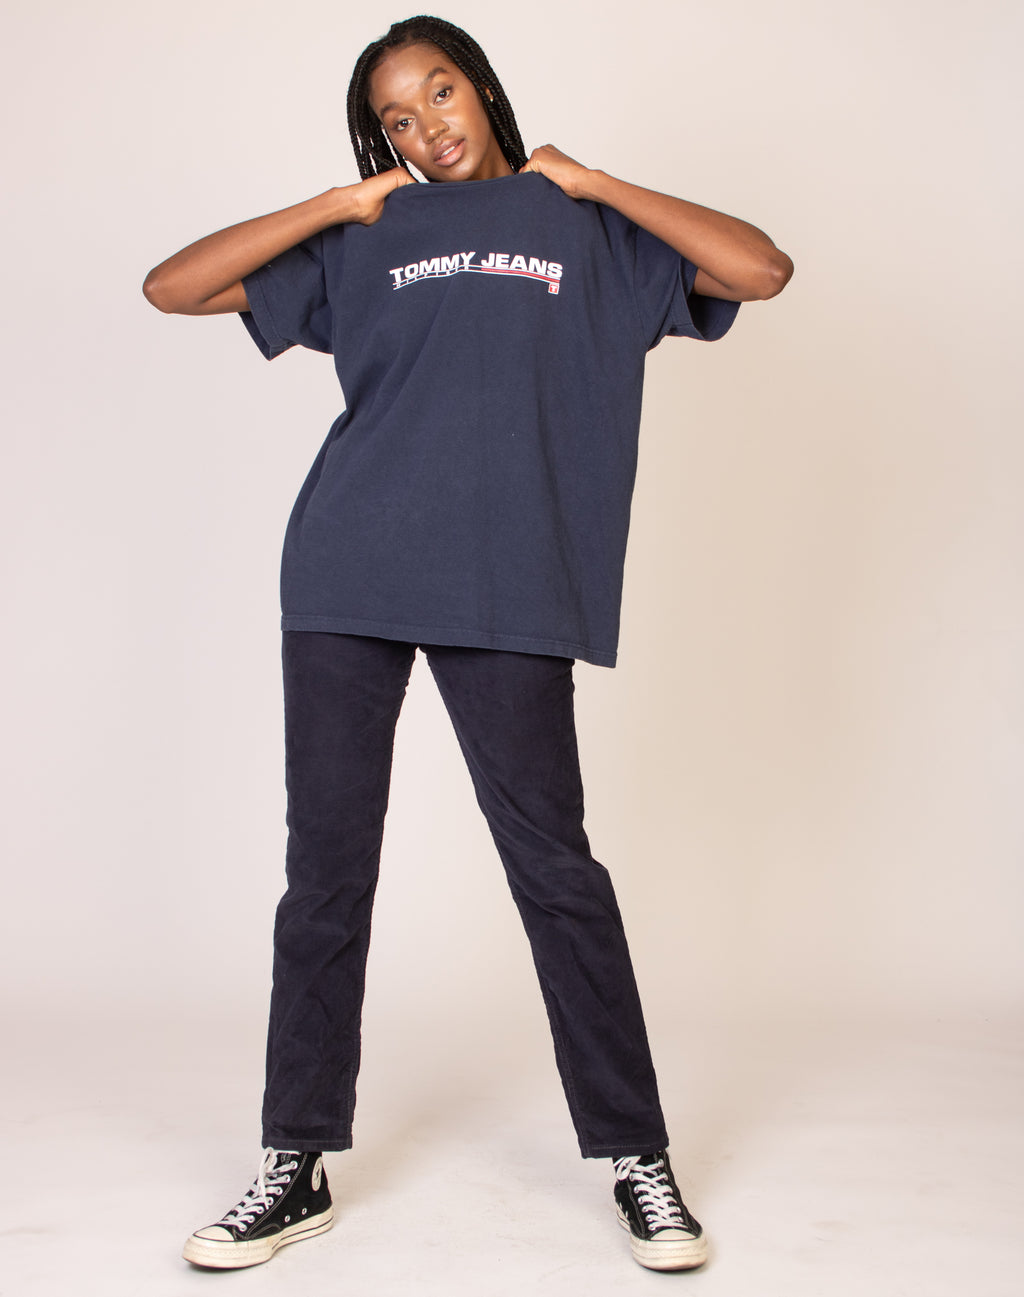 TOMMY HILFIGER NAVY BLUE TEE